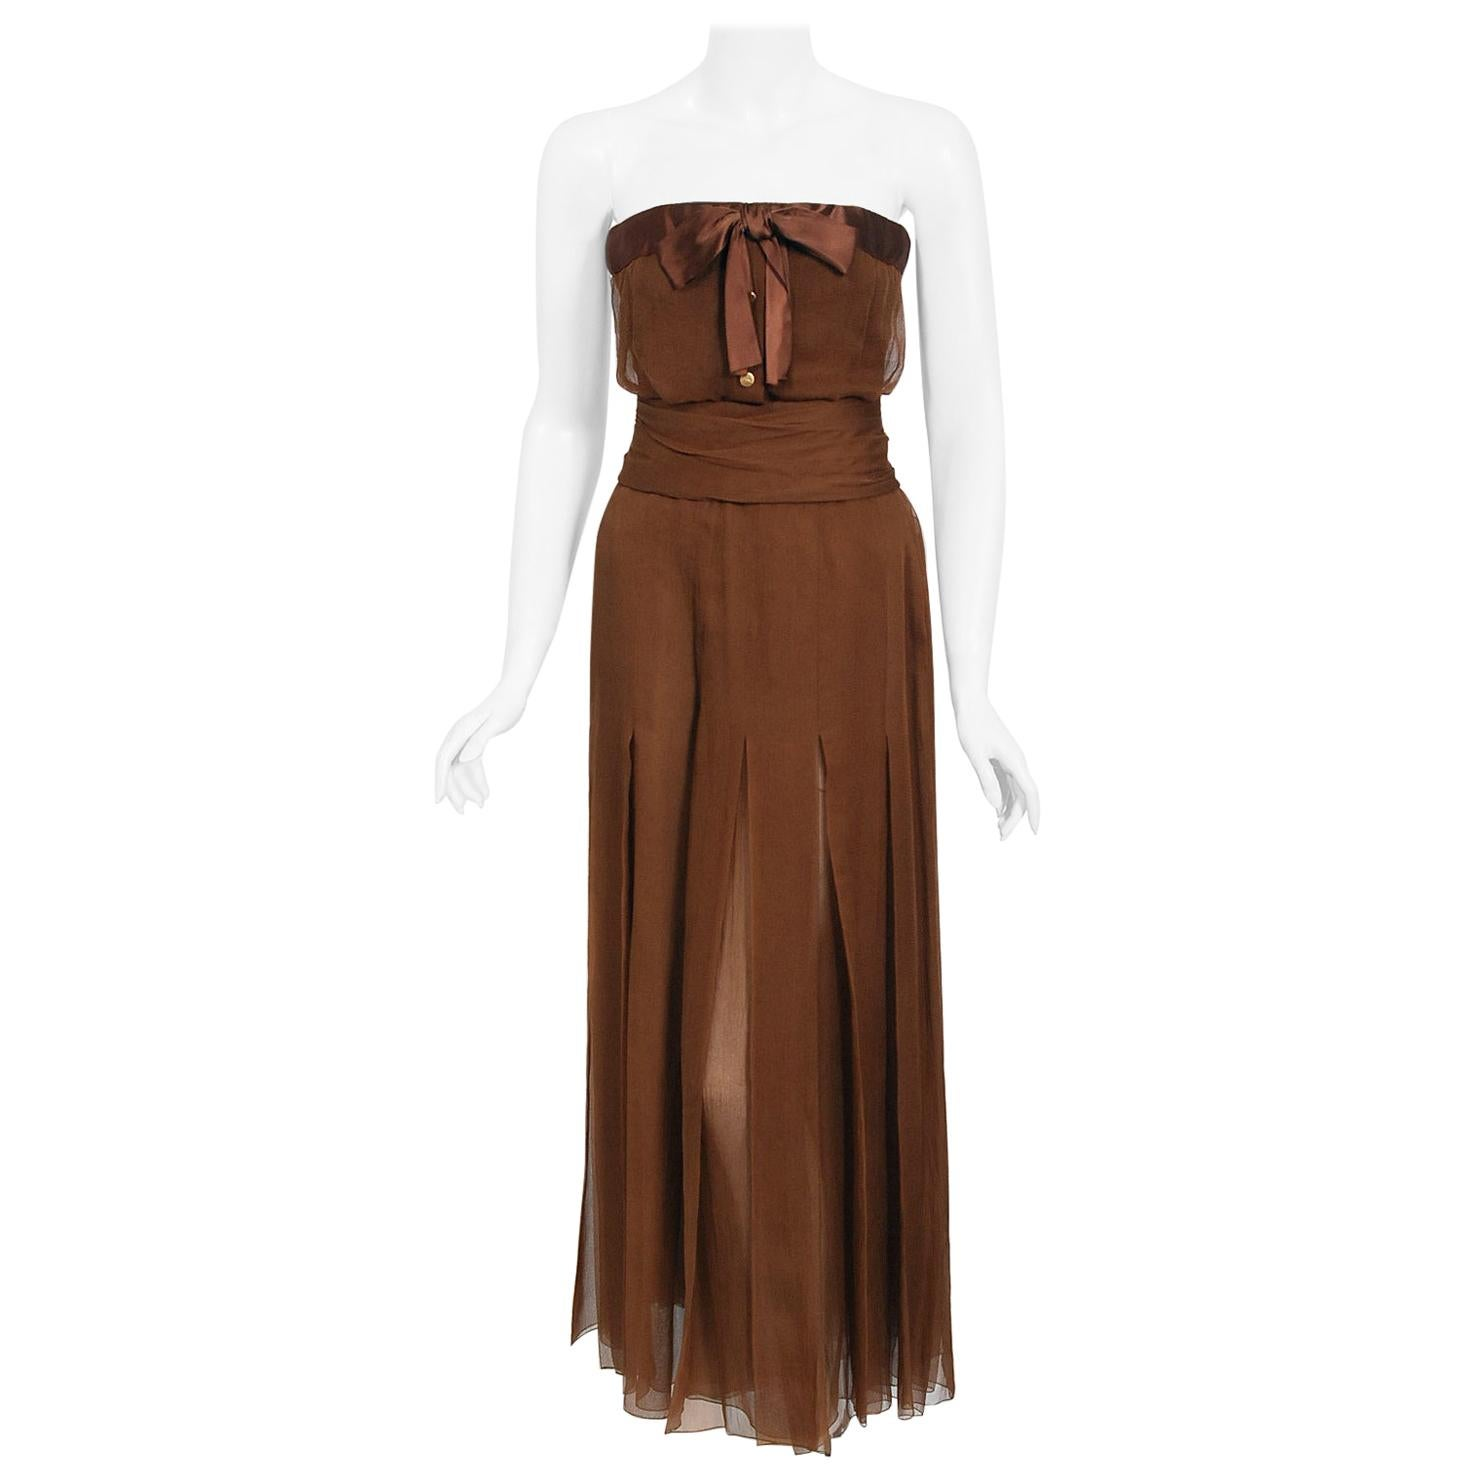 Vintage 1973 Christian Dior Haute Couture Brown Strapless Blouse & Palazzo Pants